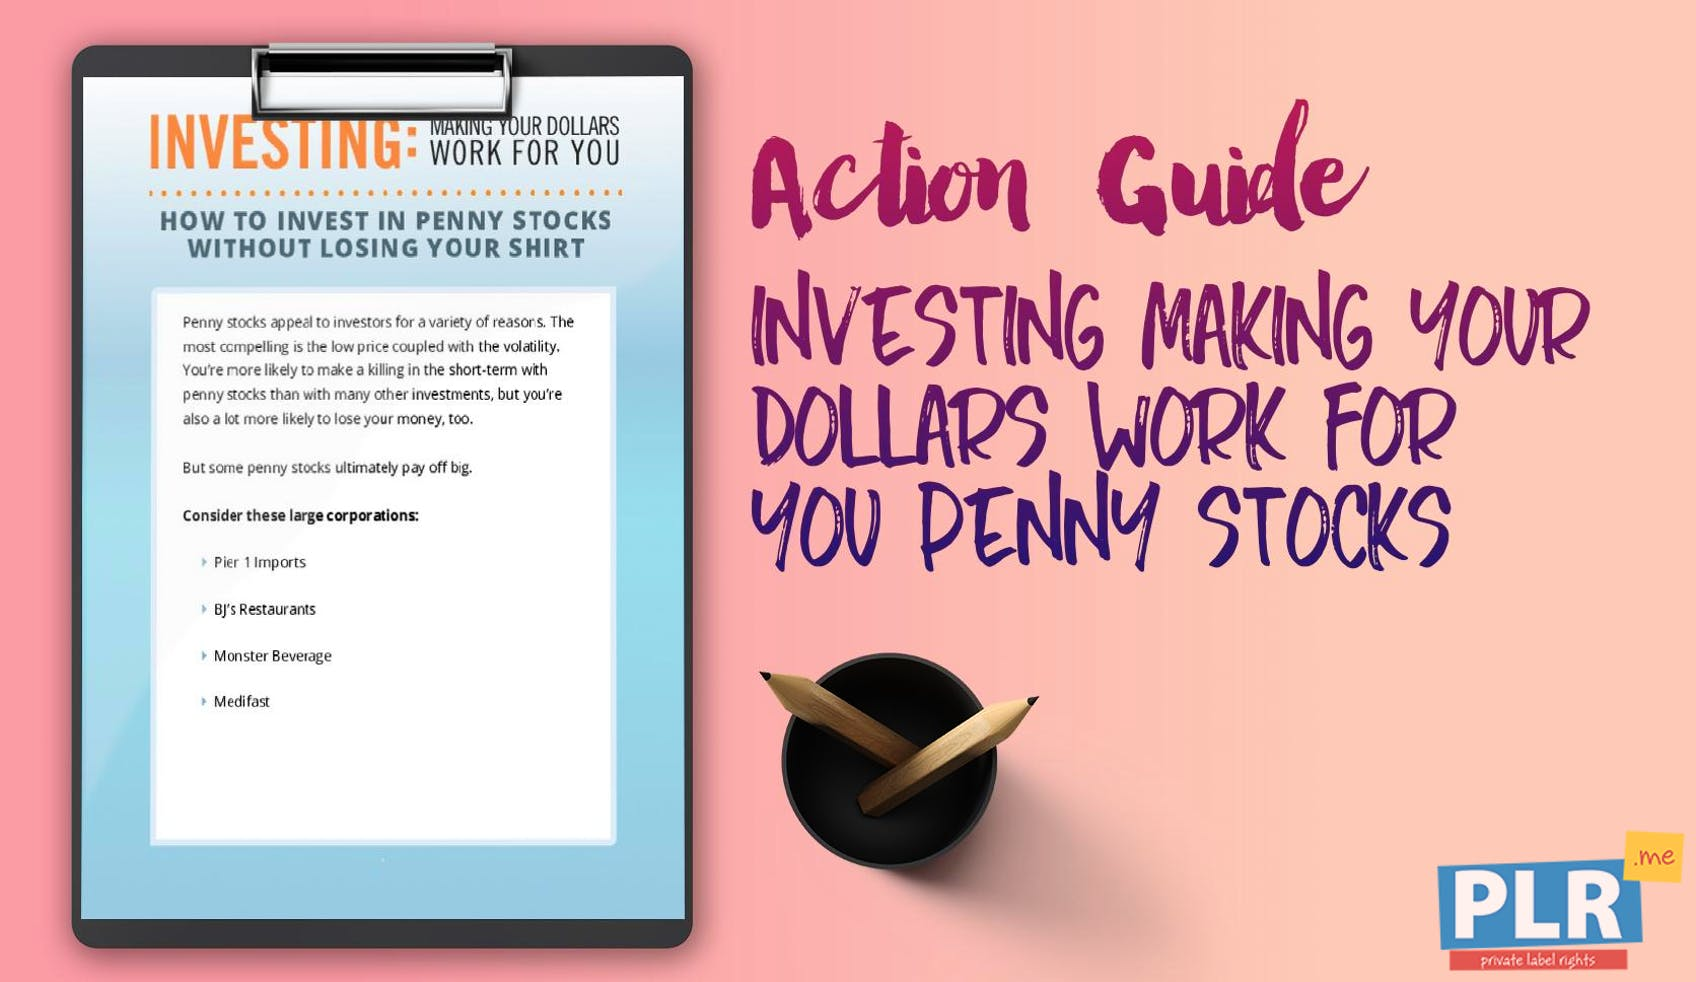 Investing Making Your Dollars Work For You Penny Stocks